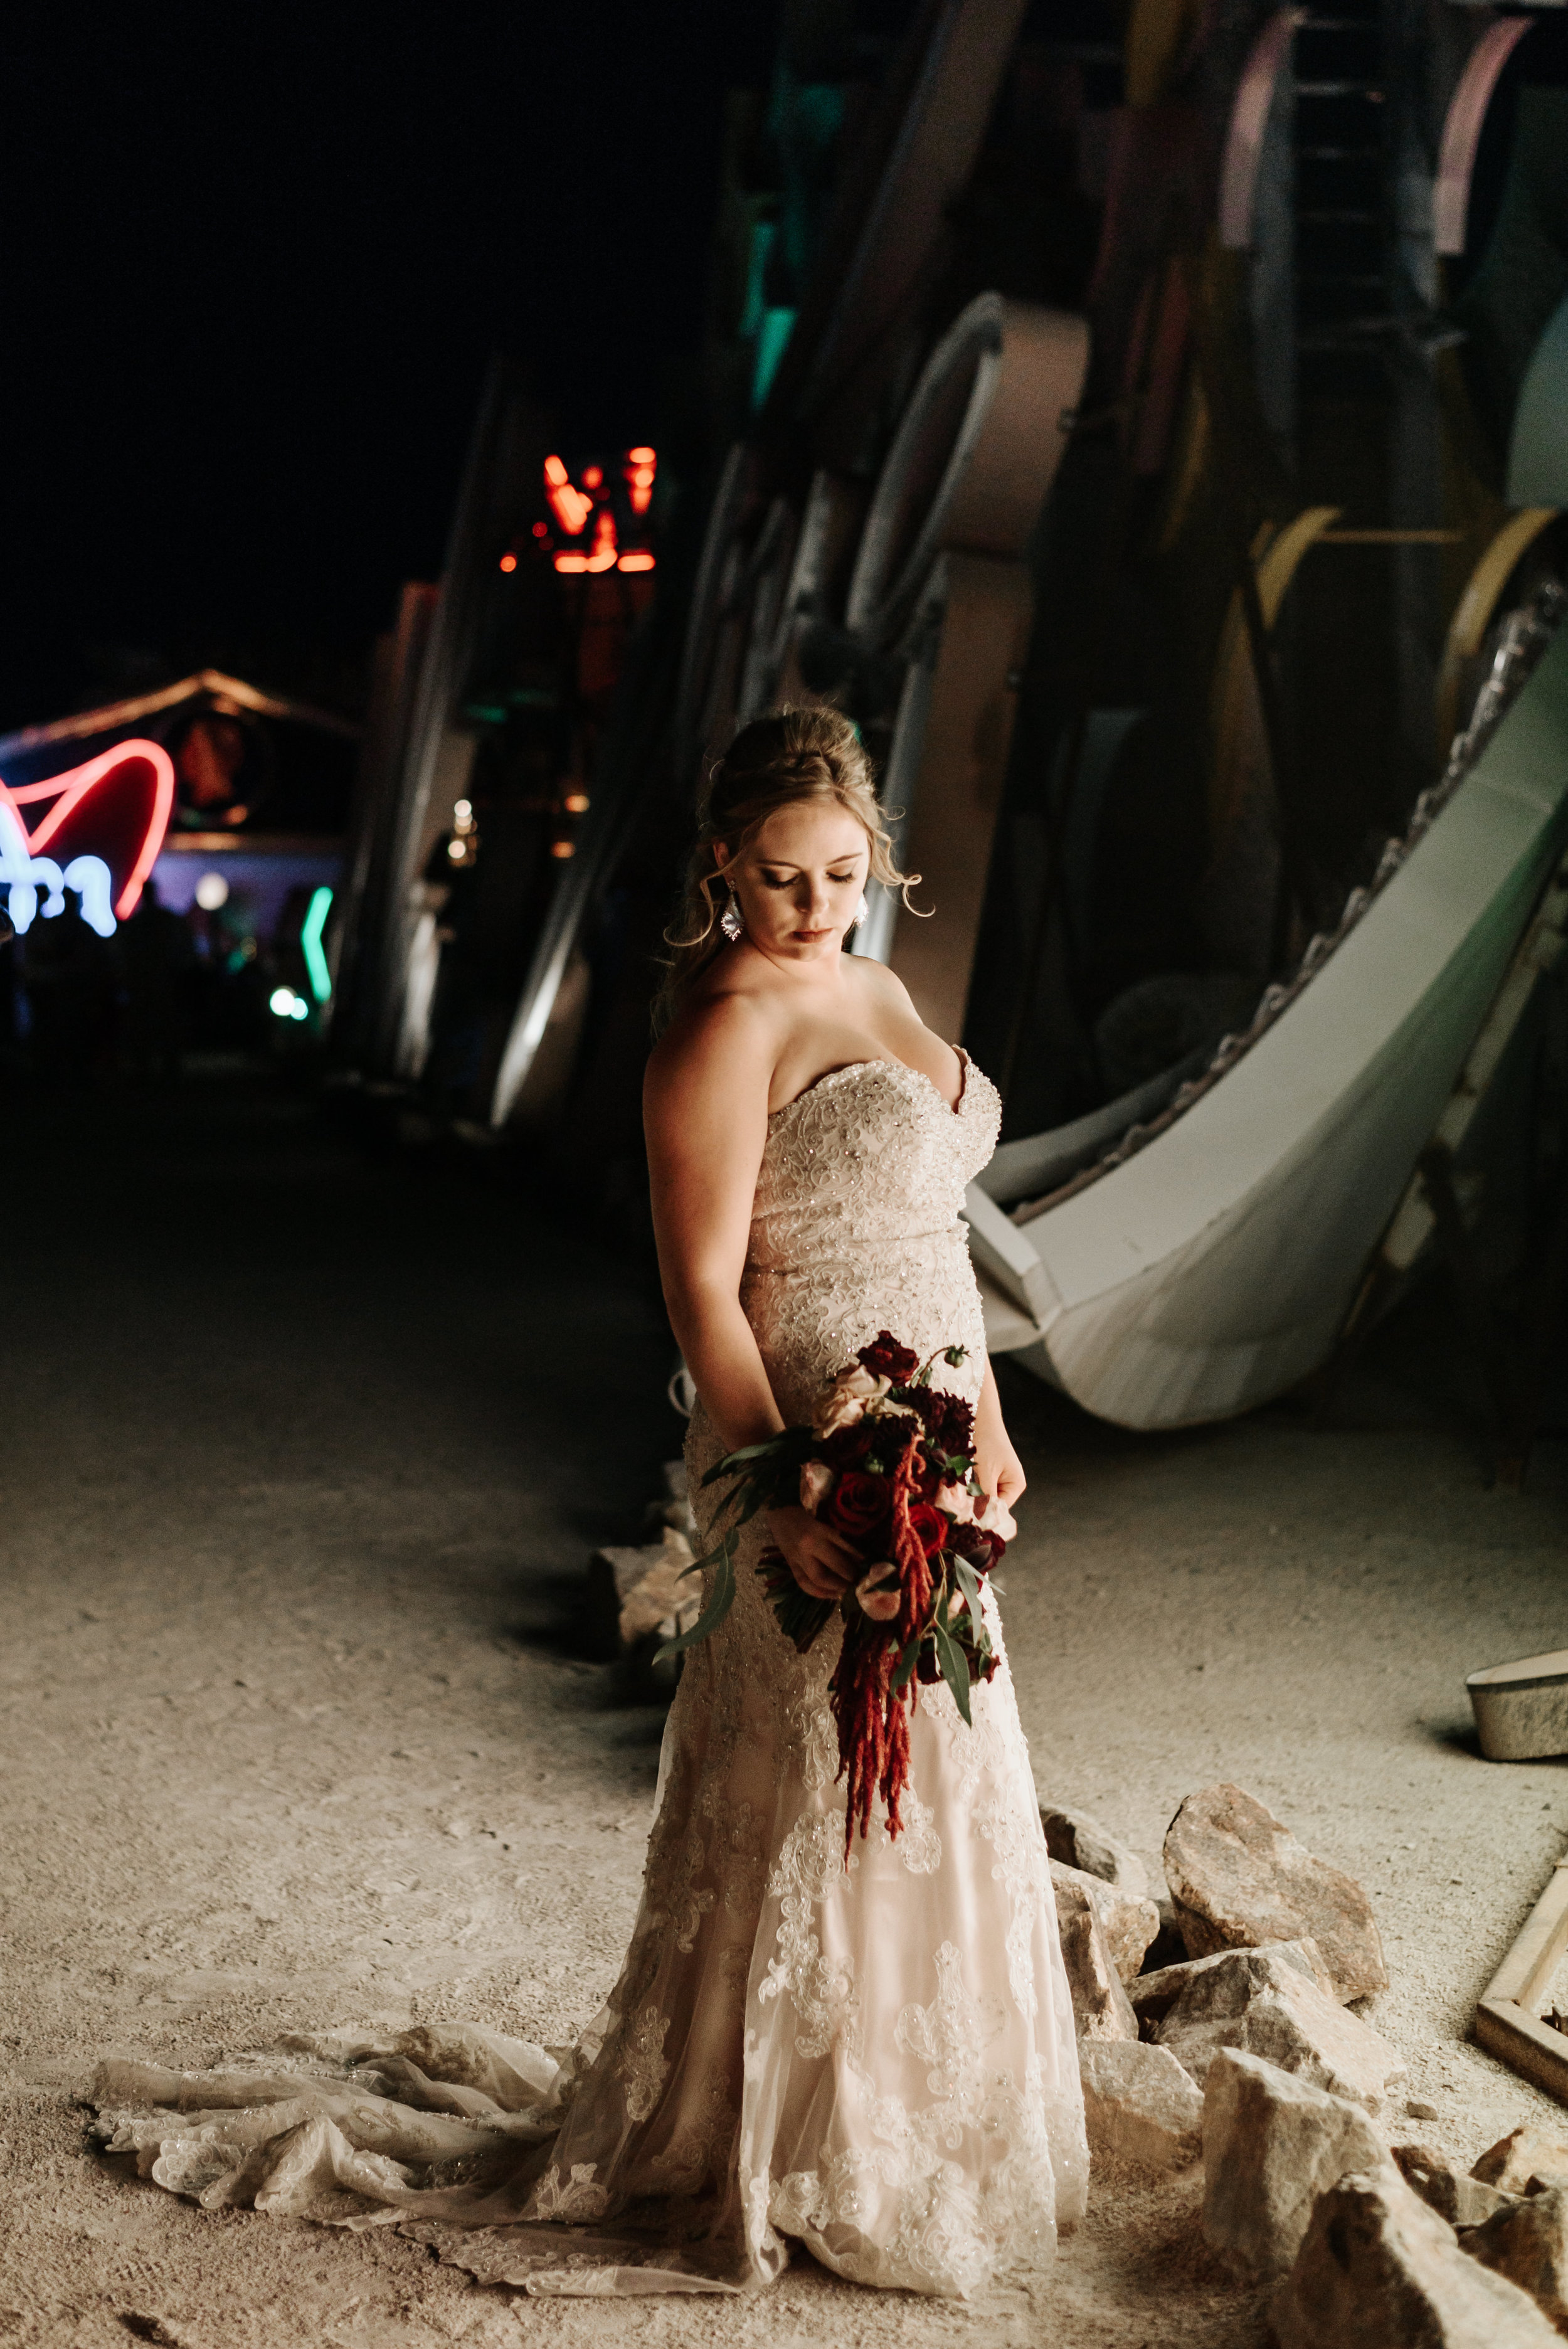 Neon-Museum-Wedding-Las-Vegas-Nevada-Golden-Nugget-Photography-by-V-Ally-and-Dan-6992.jpg